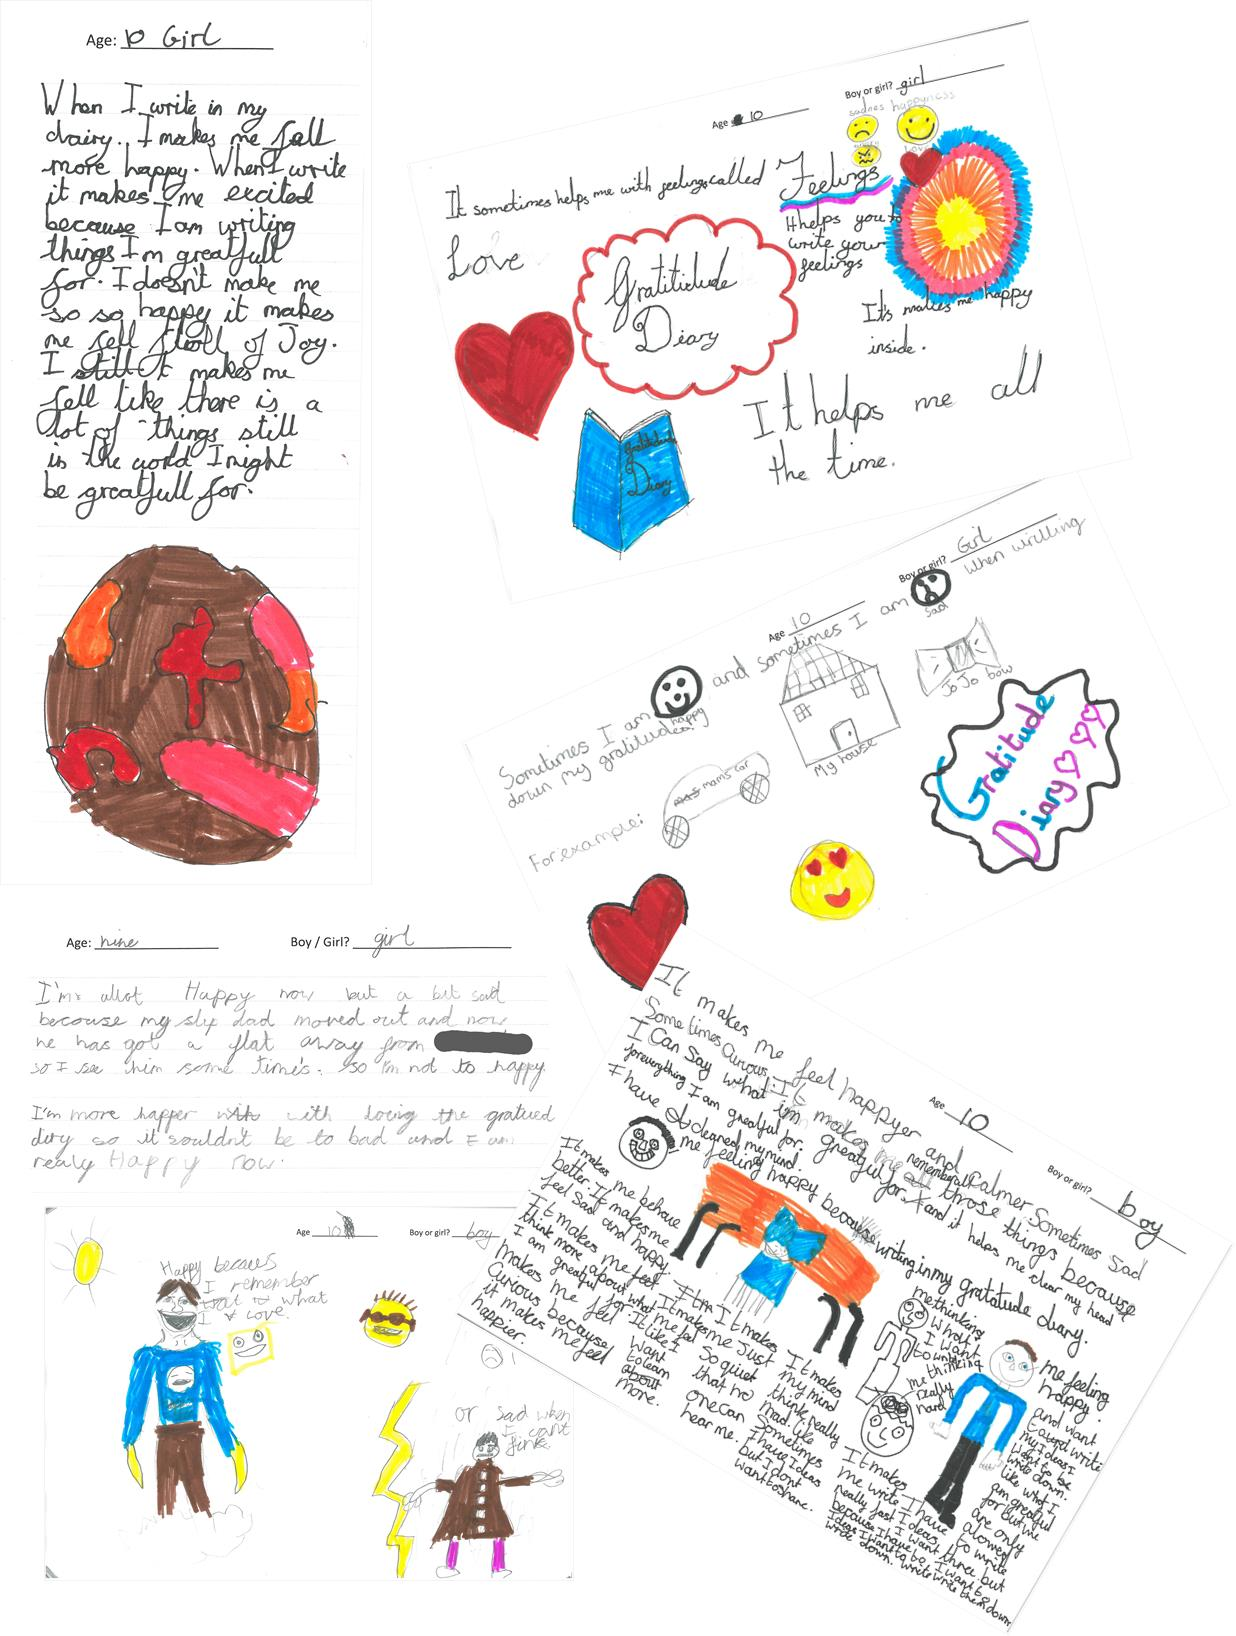 Gratitude Case Study - Examples of drawings and writing in response to the case study question. Image shows a selection of children's drawings and writings.